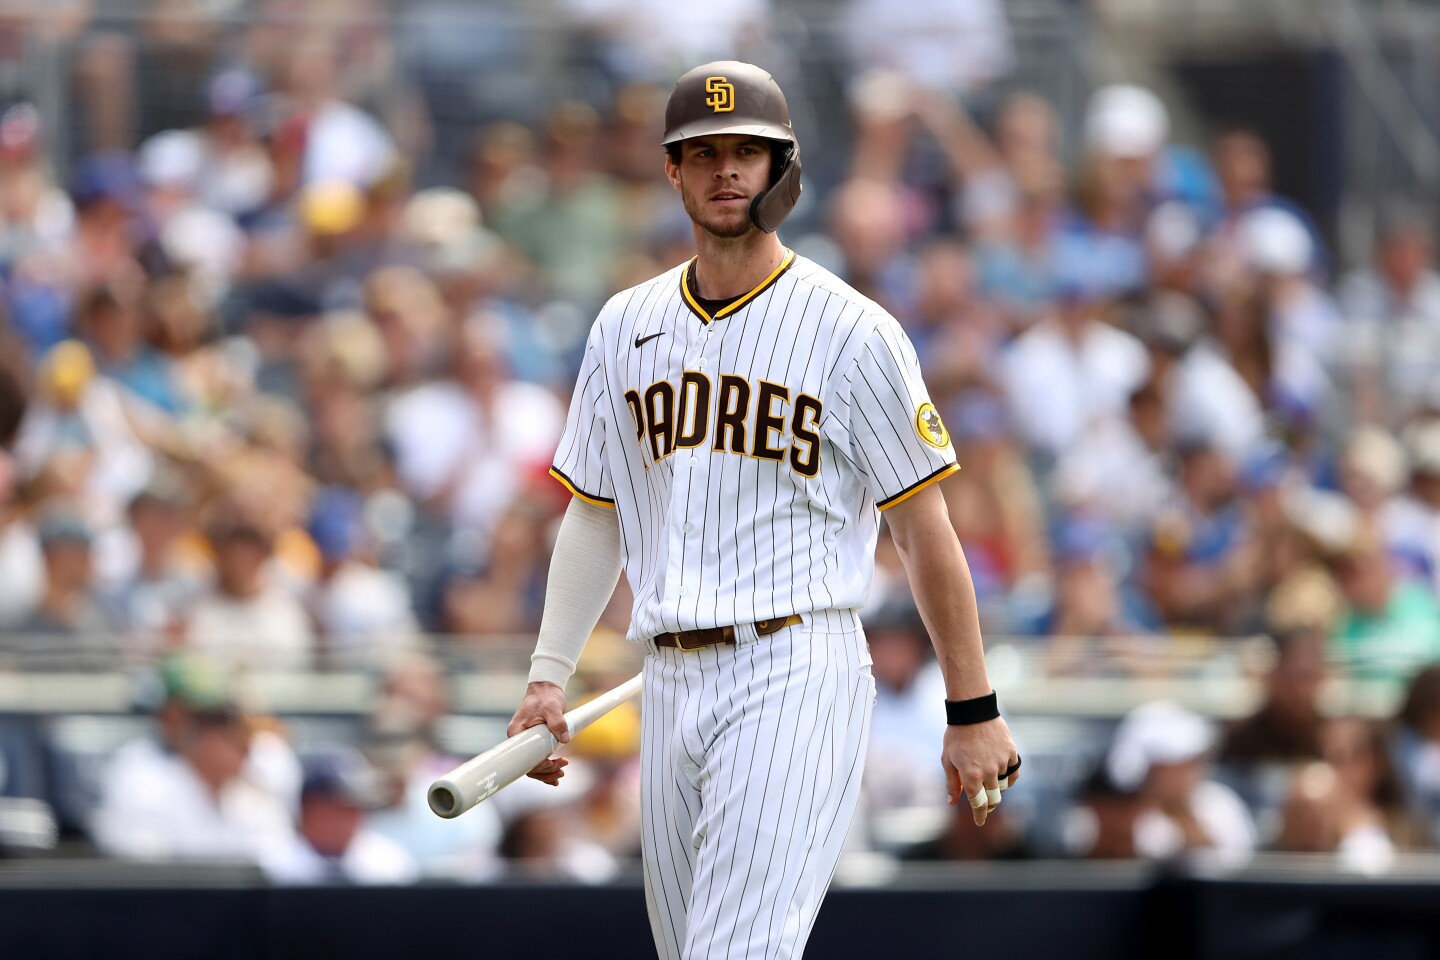 SAN DIEGO, CALIFORNIA - JUNE 09: Wil Myers #5 of the San Diego Padres looks on after striking out during a game against the Chicago Cubs at PETCO Park on June 09, 2021 in San Diego, California. (Photo by Sean M. Haffey/Getty Images)